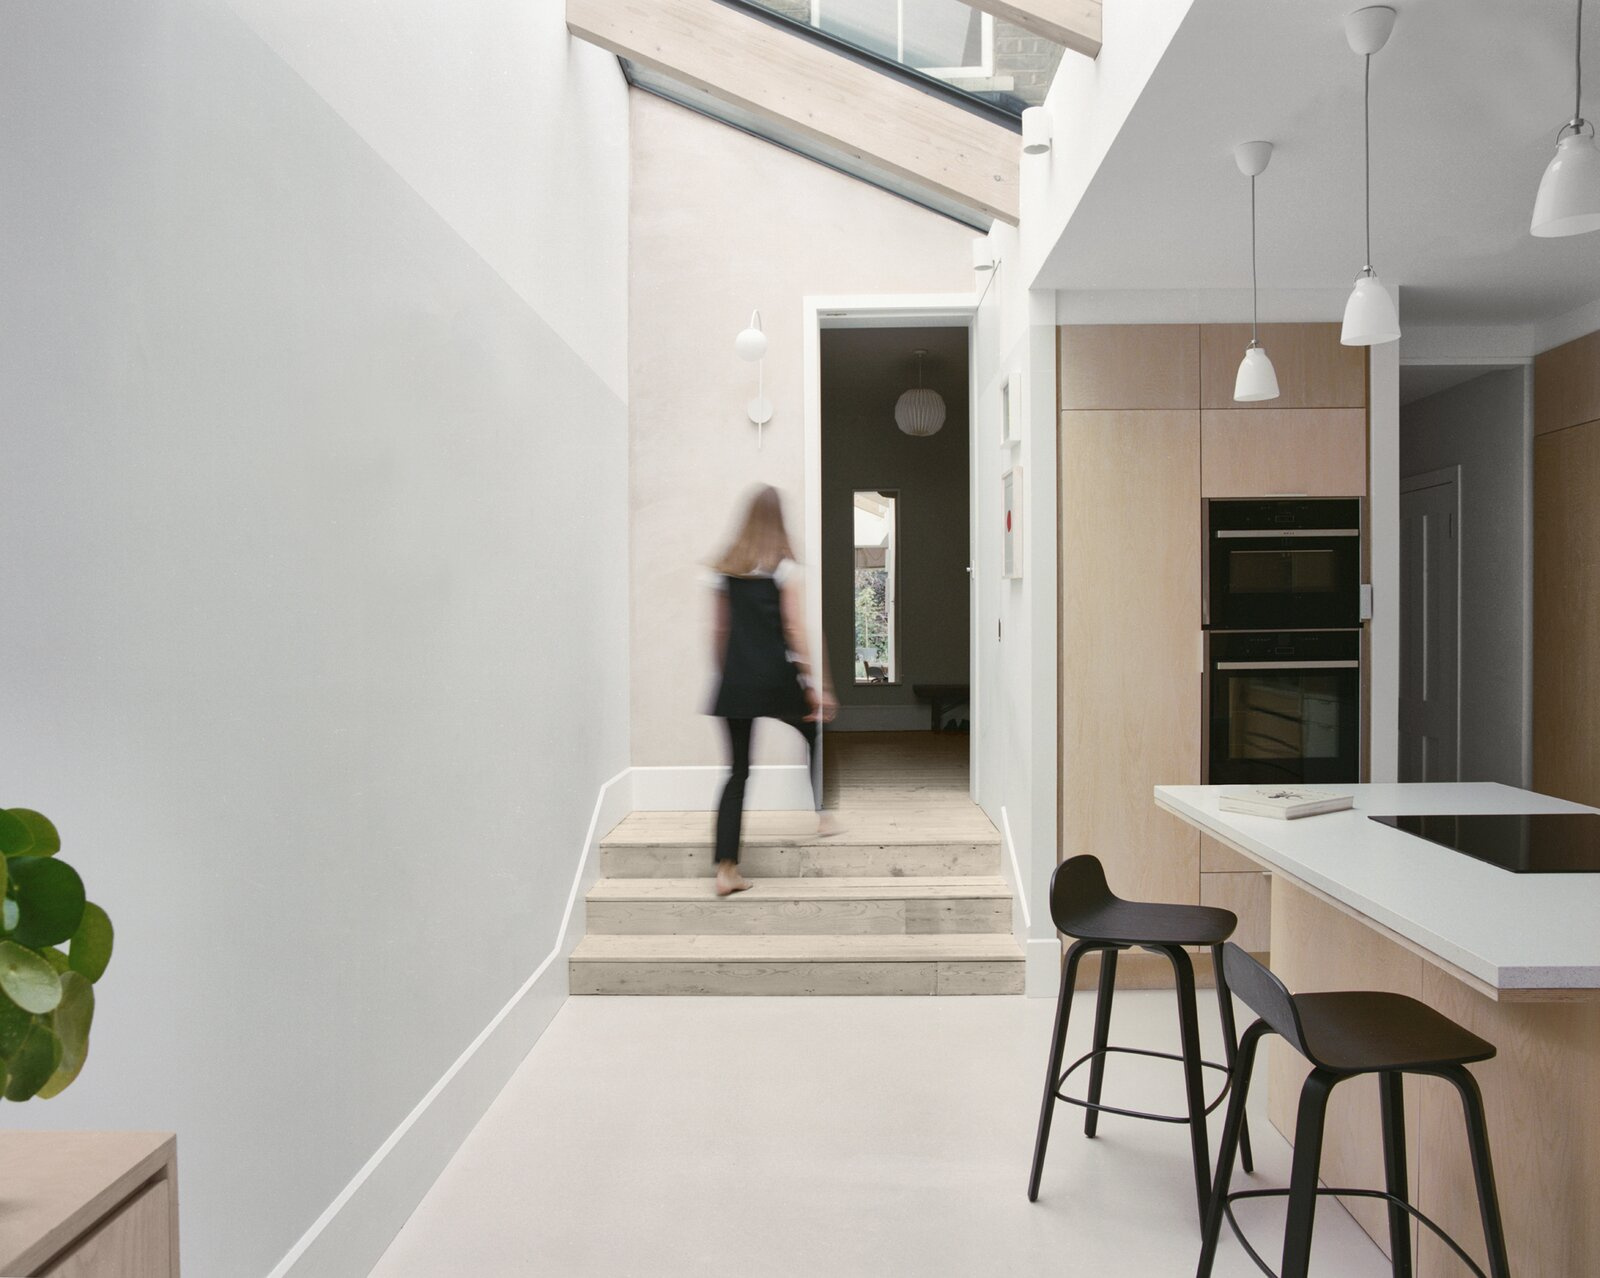 Hallway of Zigzag Roof House by 4 S Architecture.